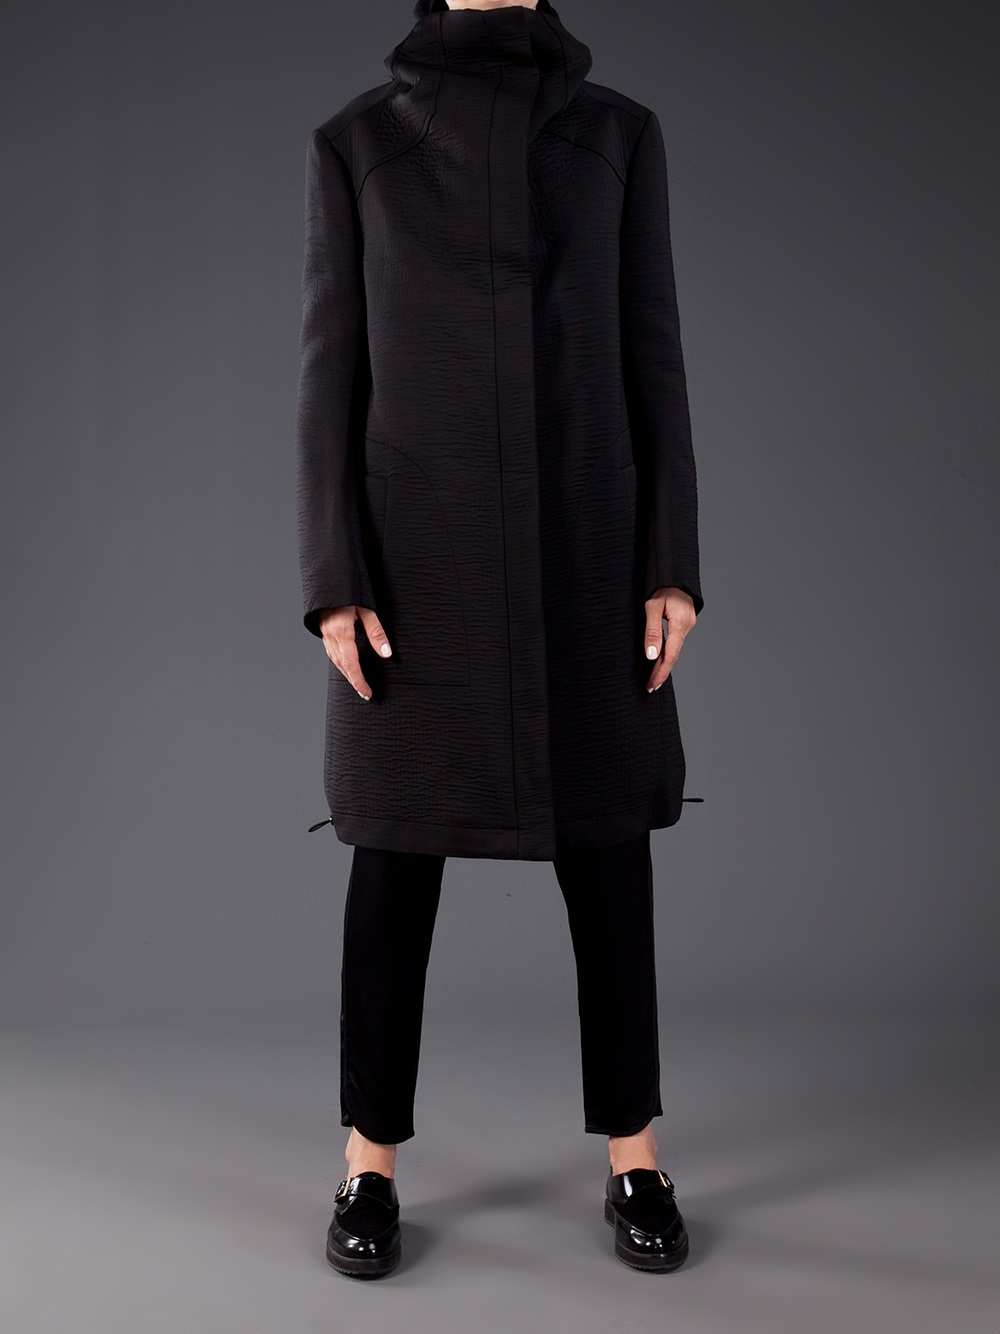 Thamanyah Hooded Long Coat in Black | Lyst